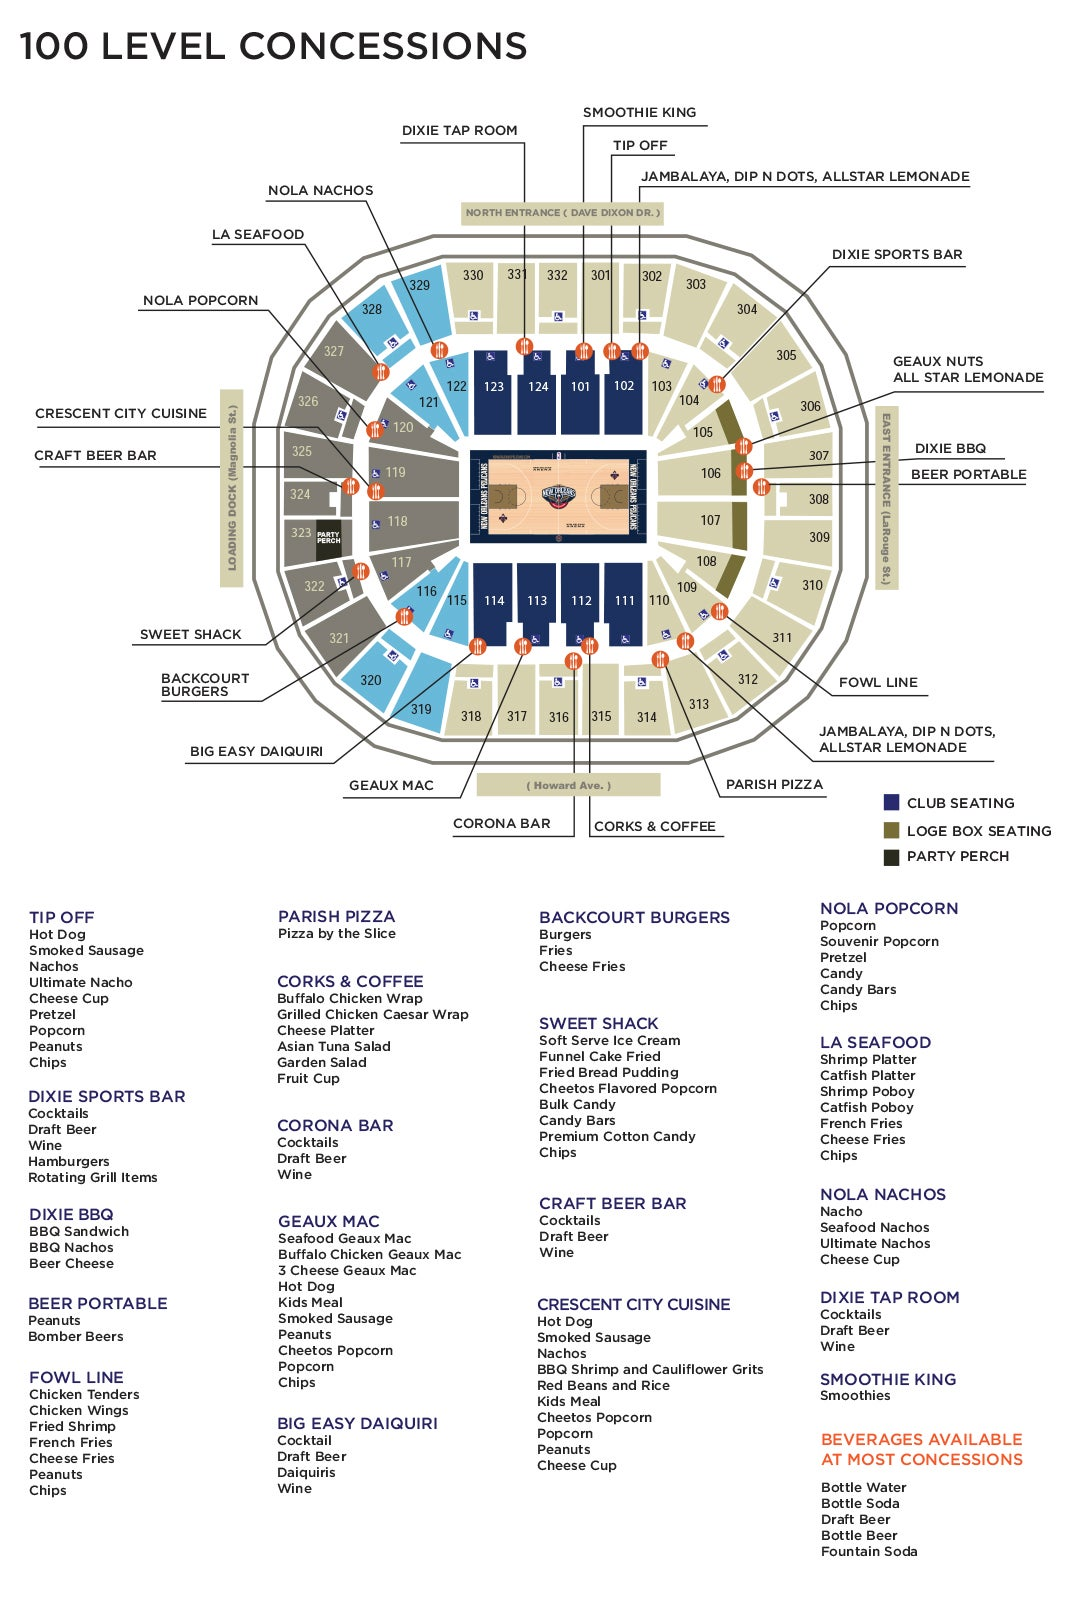 Food And Beverage Smoothie King Center Big  Voucher Map 100 Plaza Level Click Here For Concession